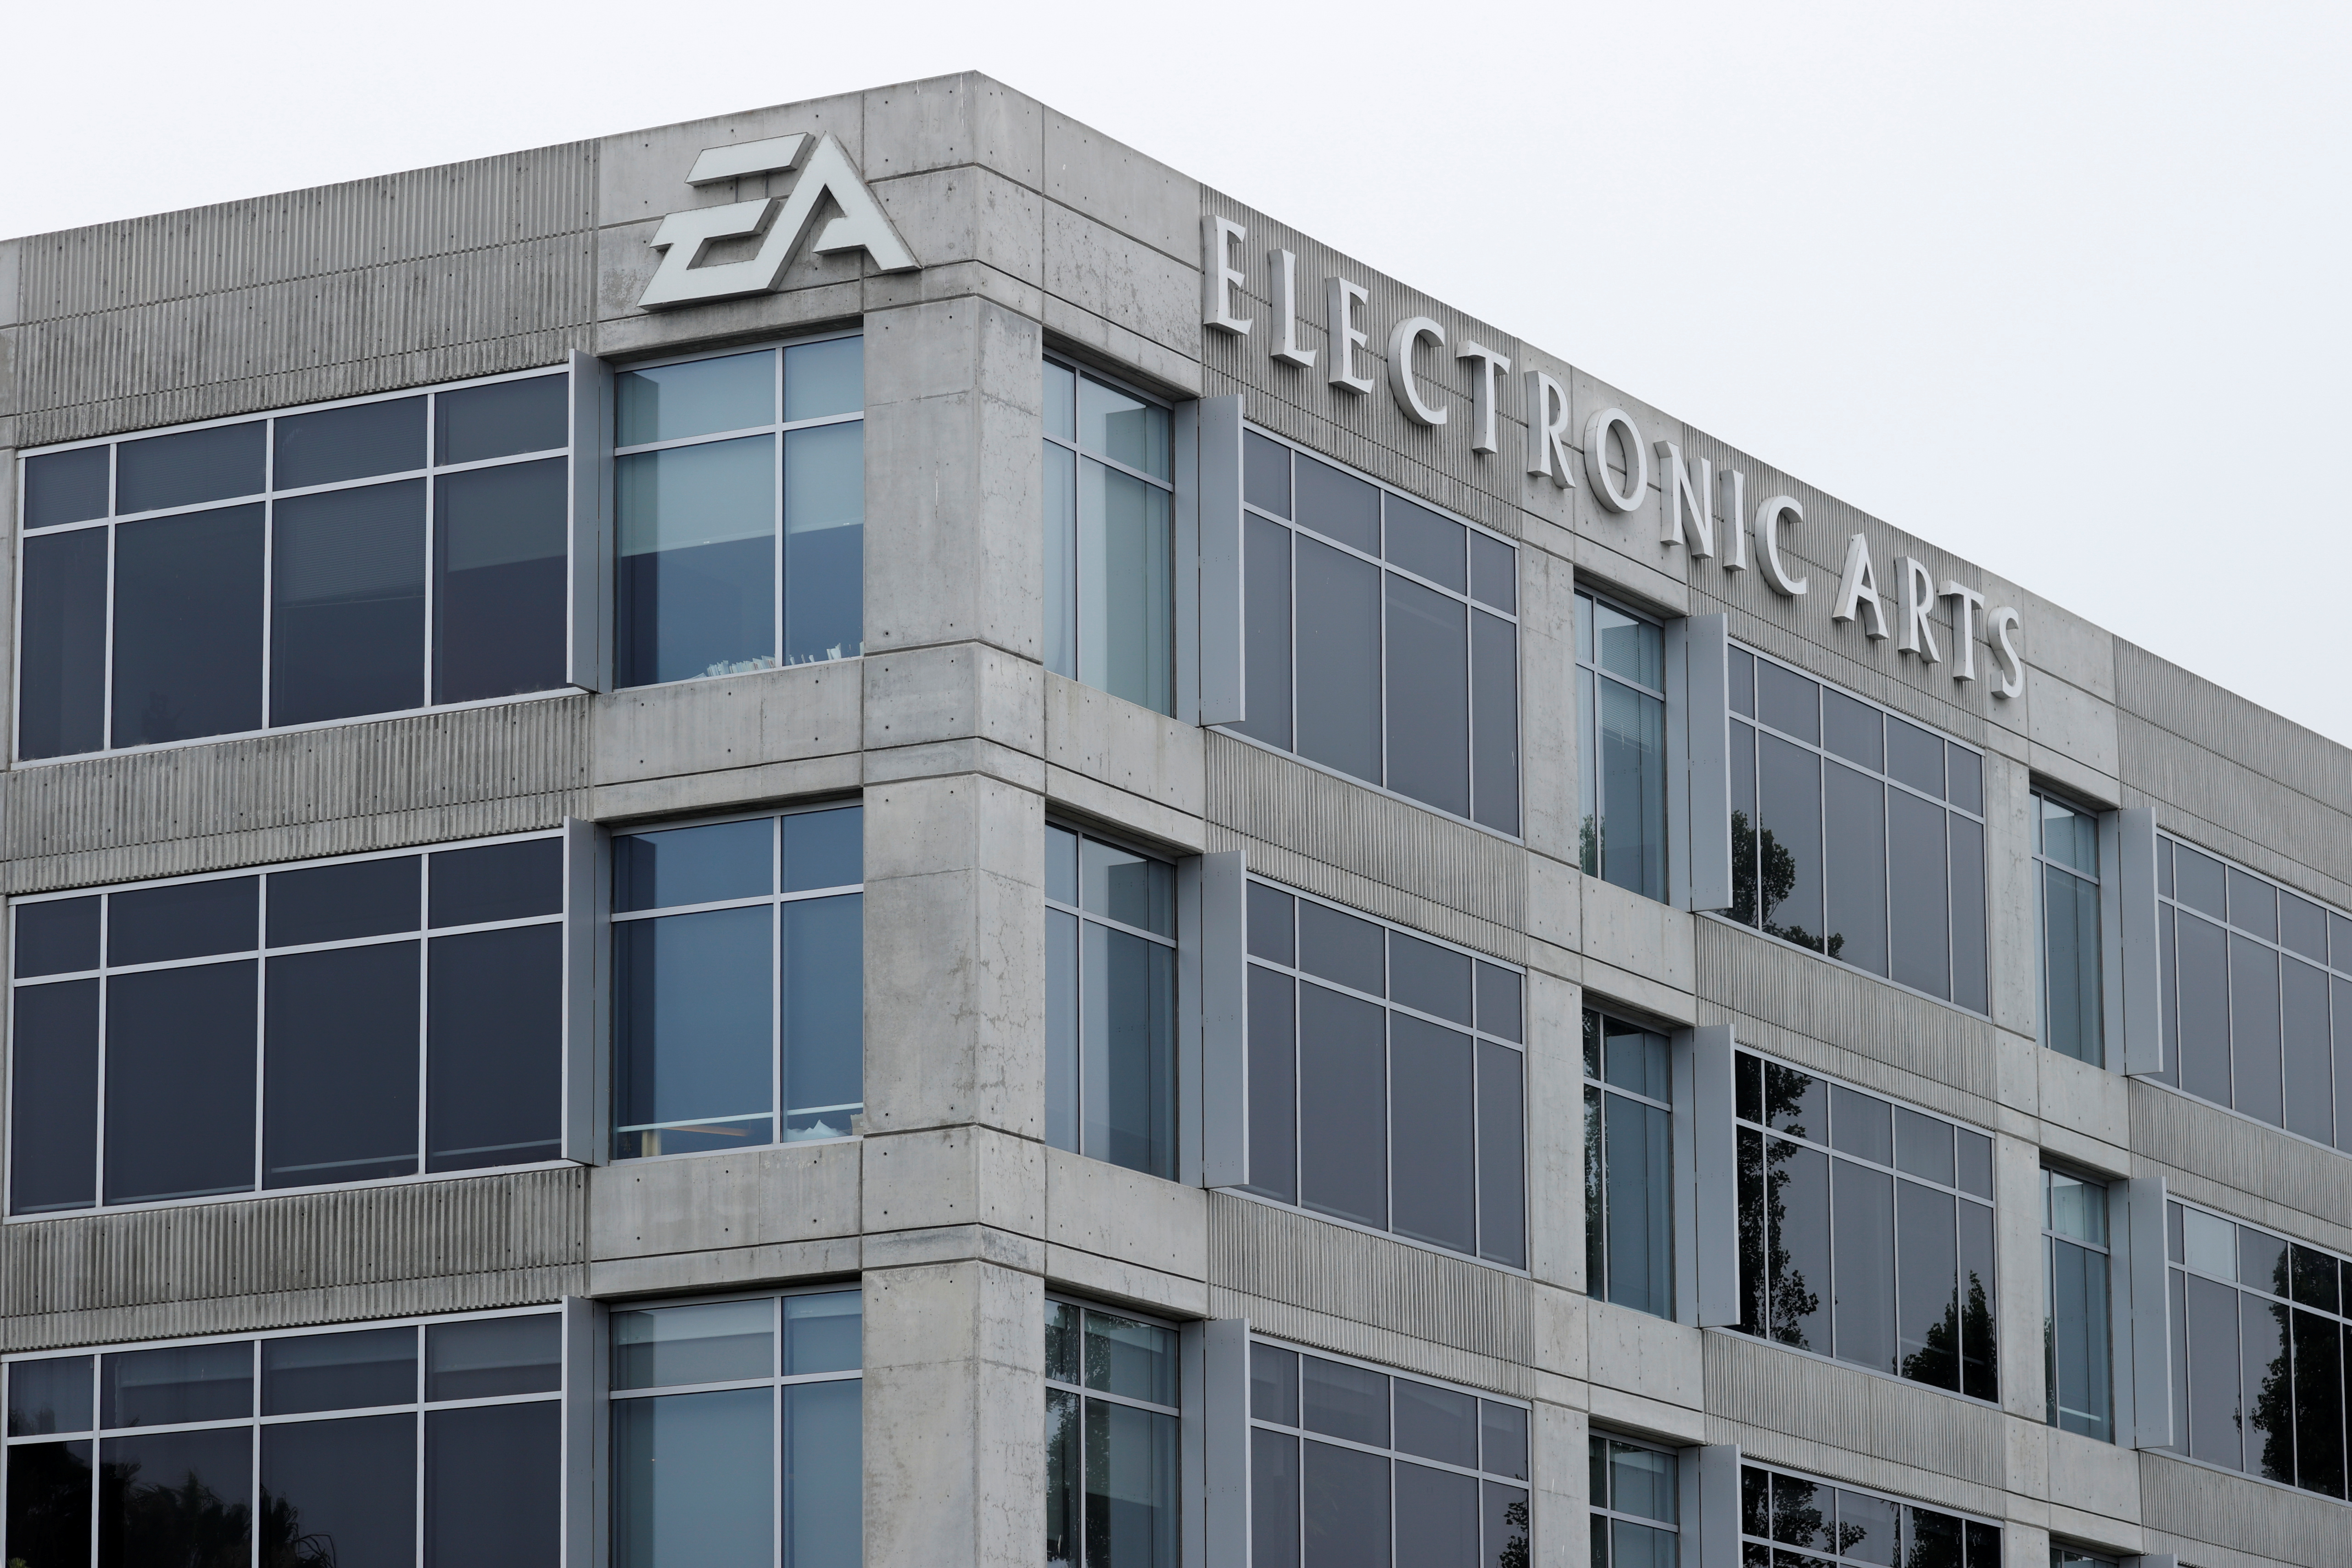 An Electronic Arts office building is shown in Los Angeles, California, U.S., July 27, 2020. REUTERS/Mike Blake